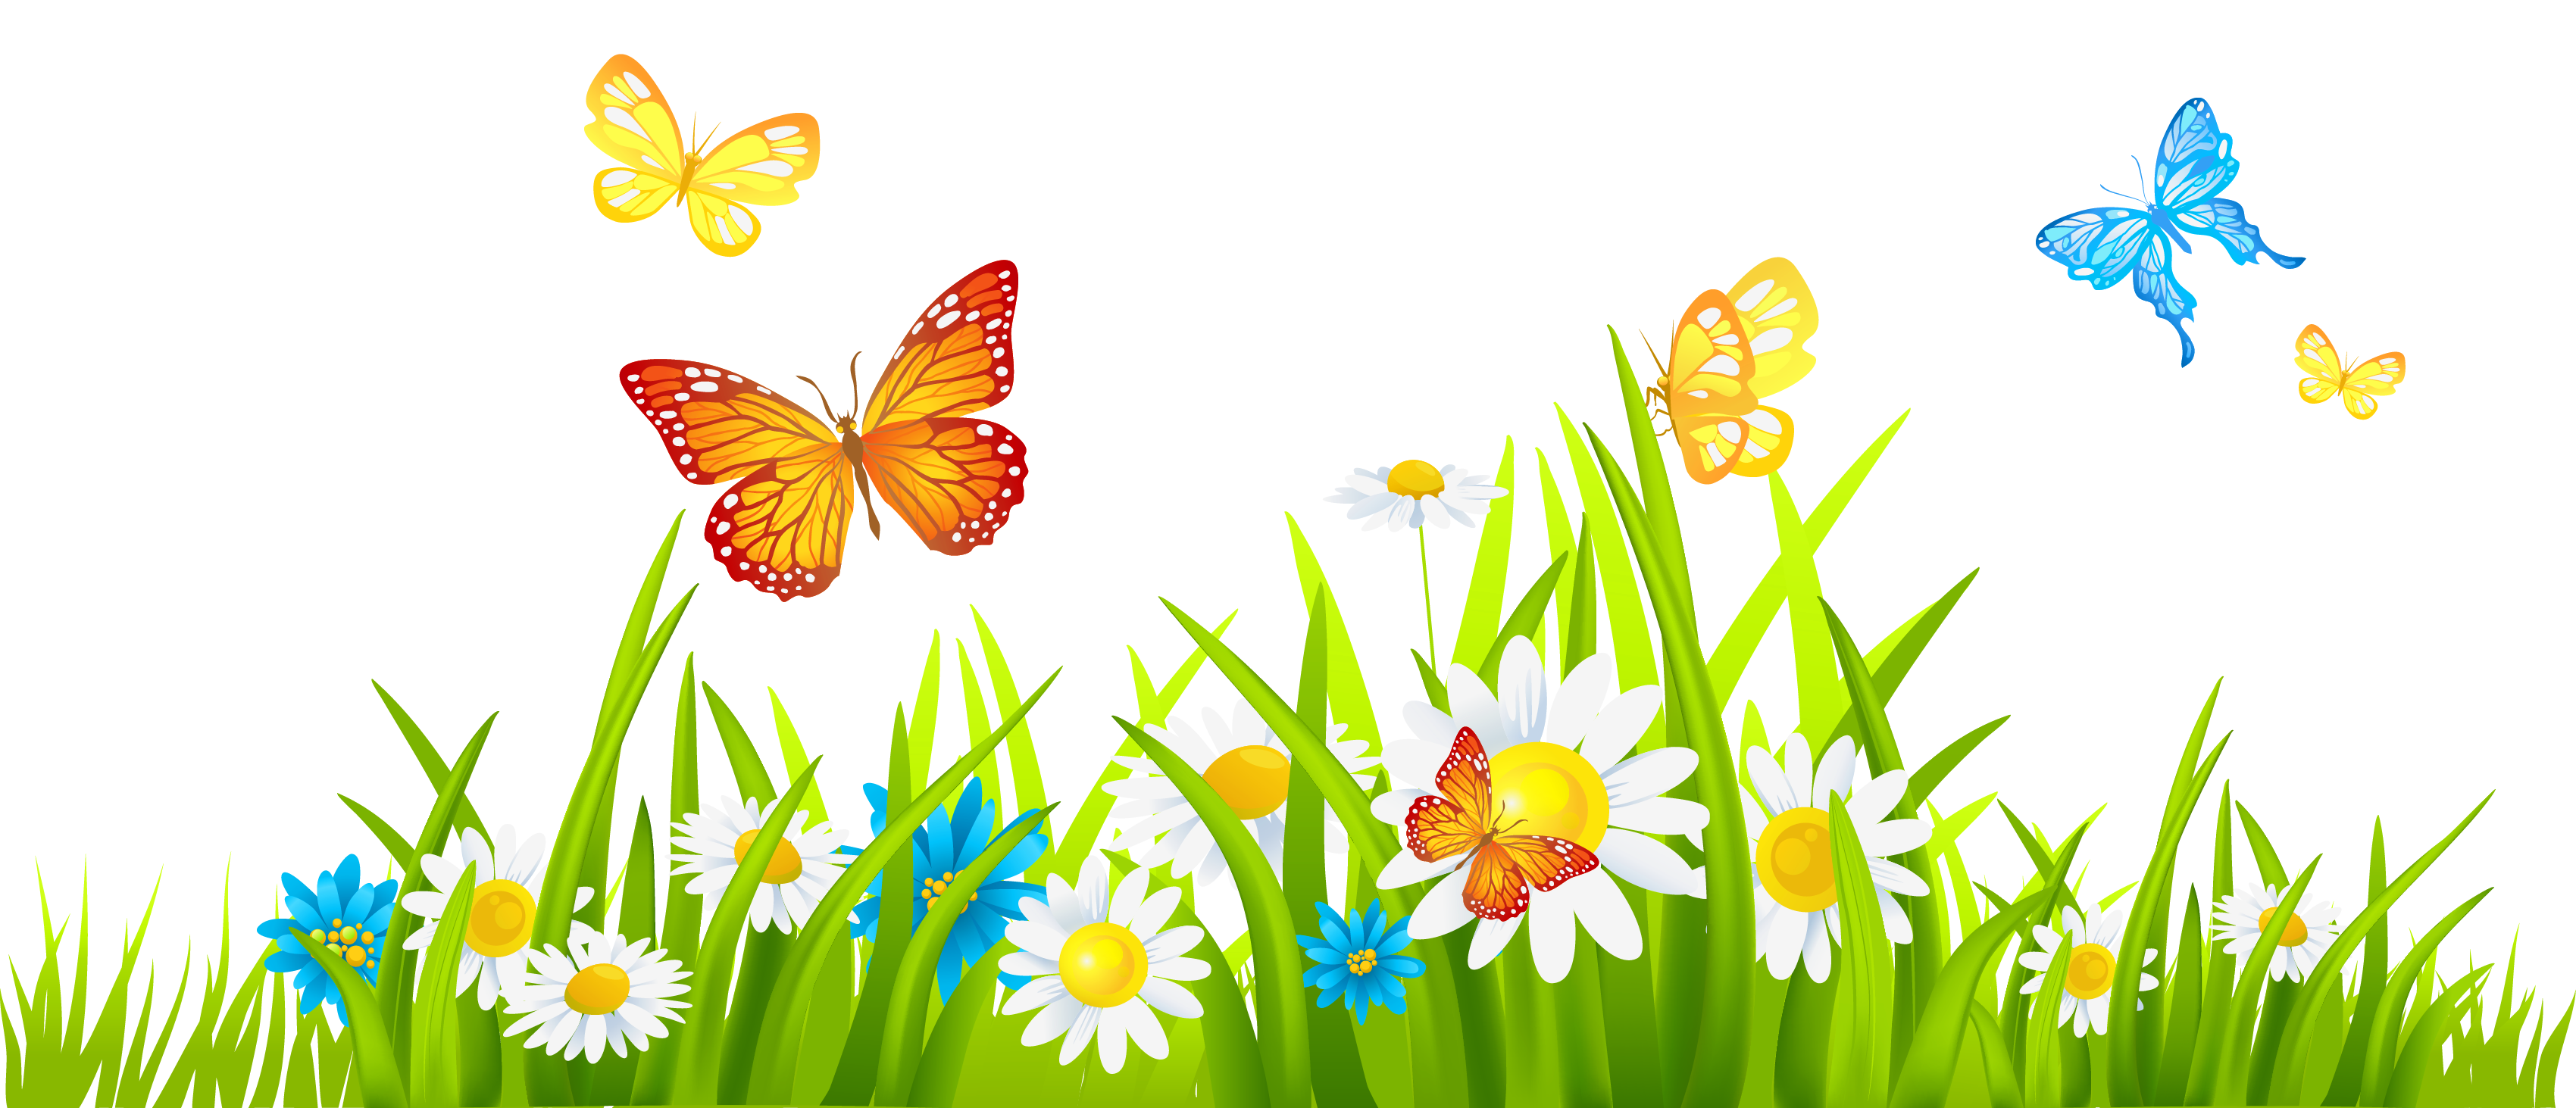 Garden clipart background png. Collection of high